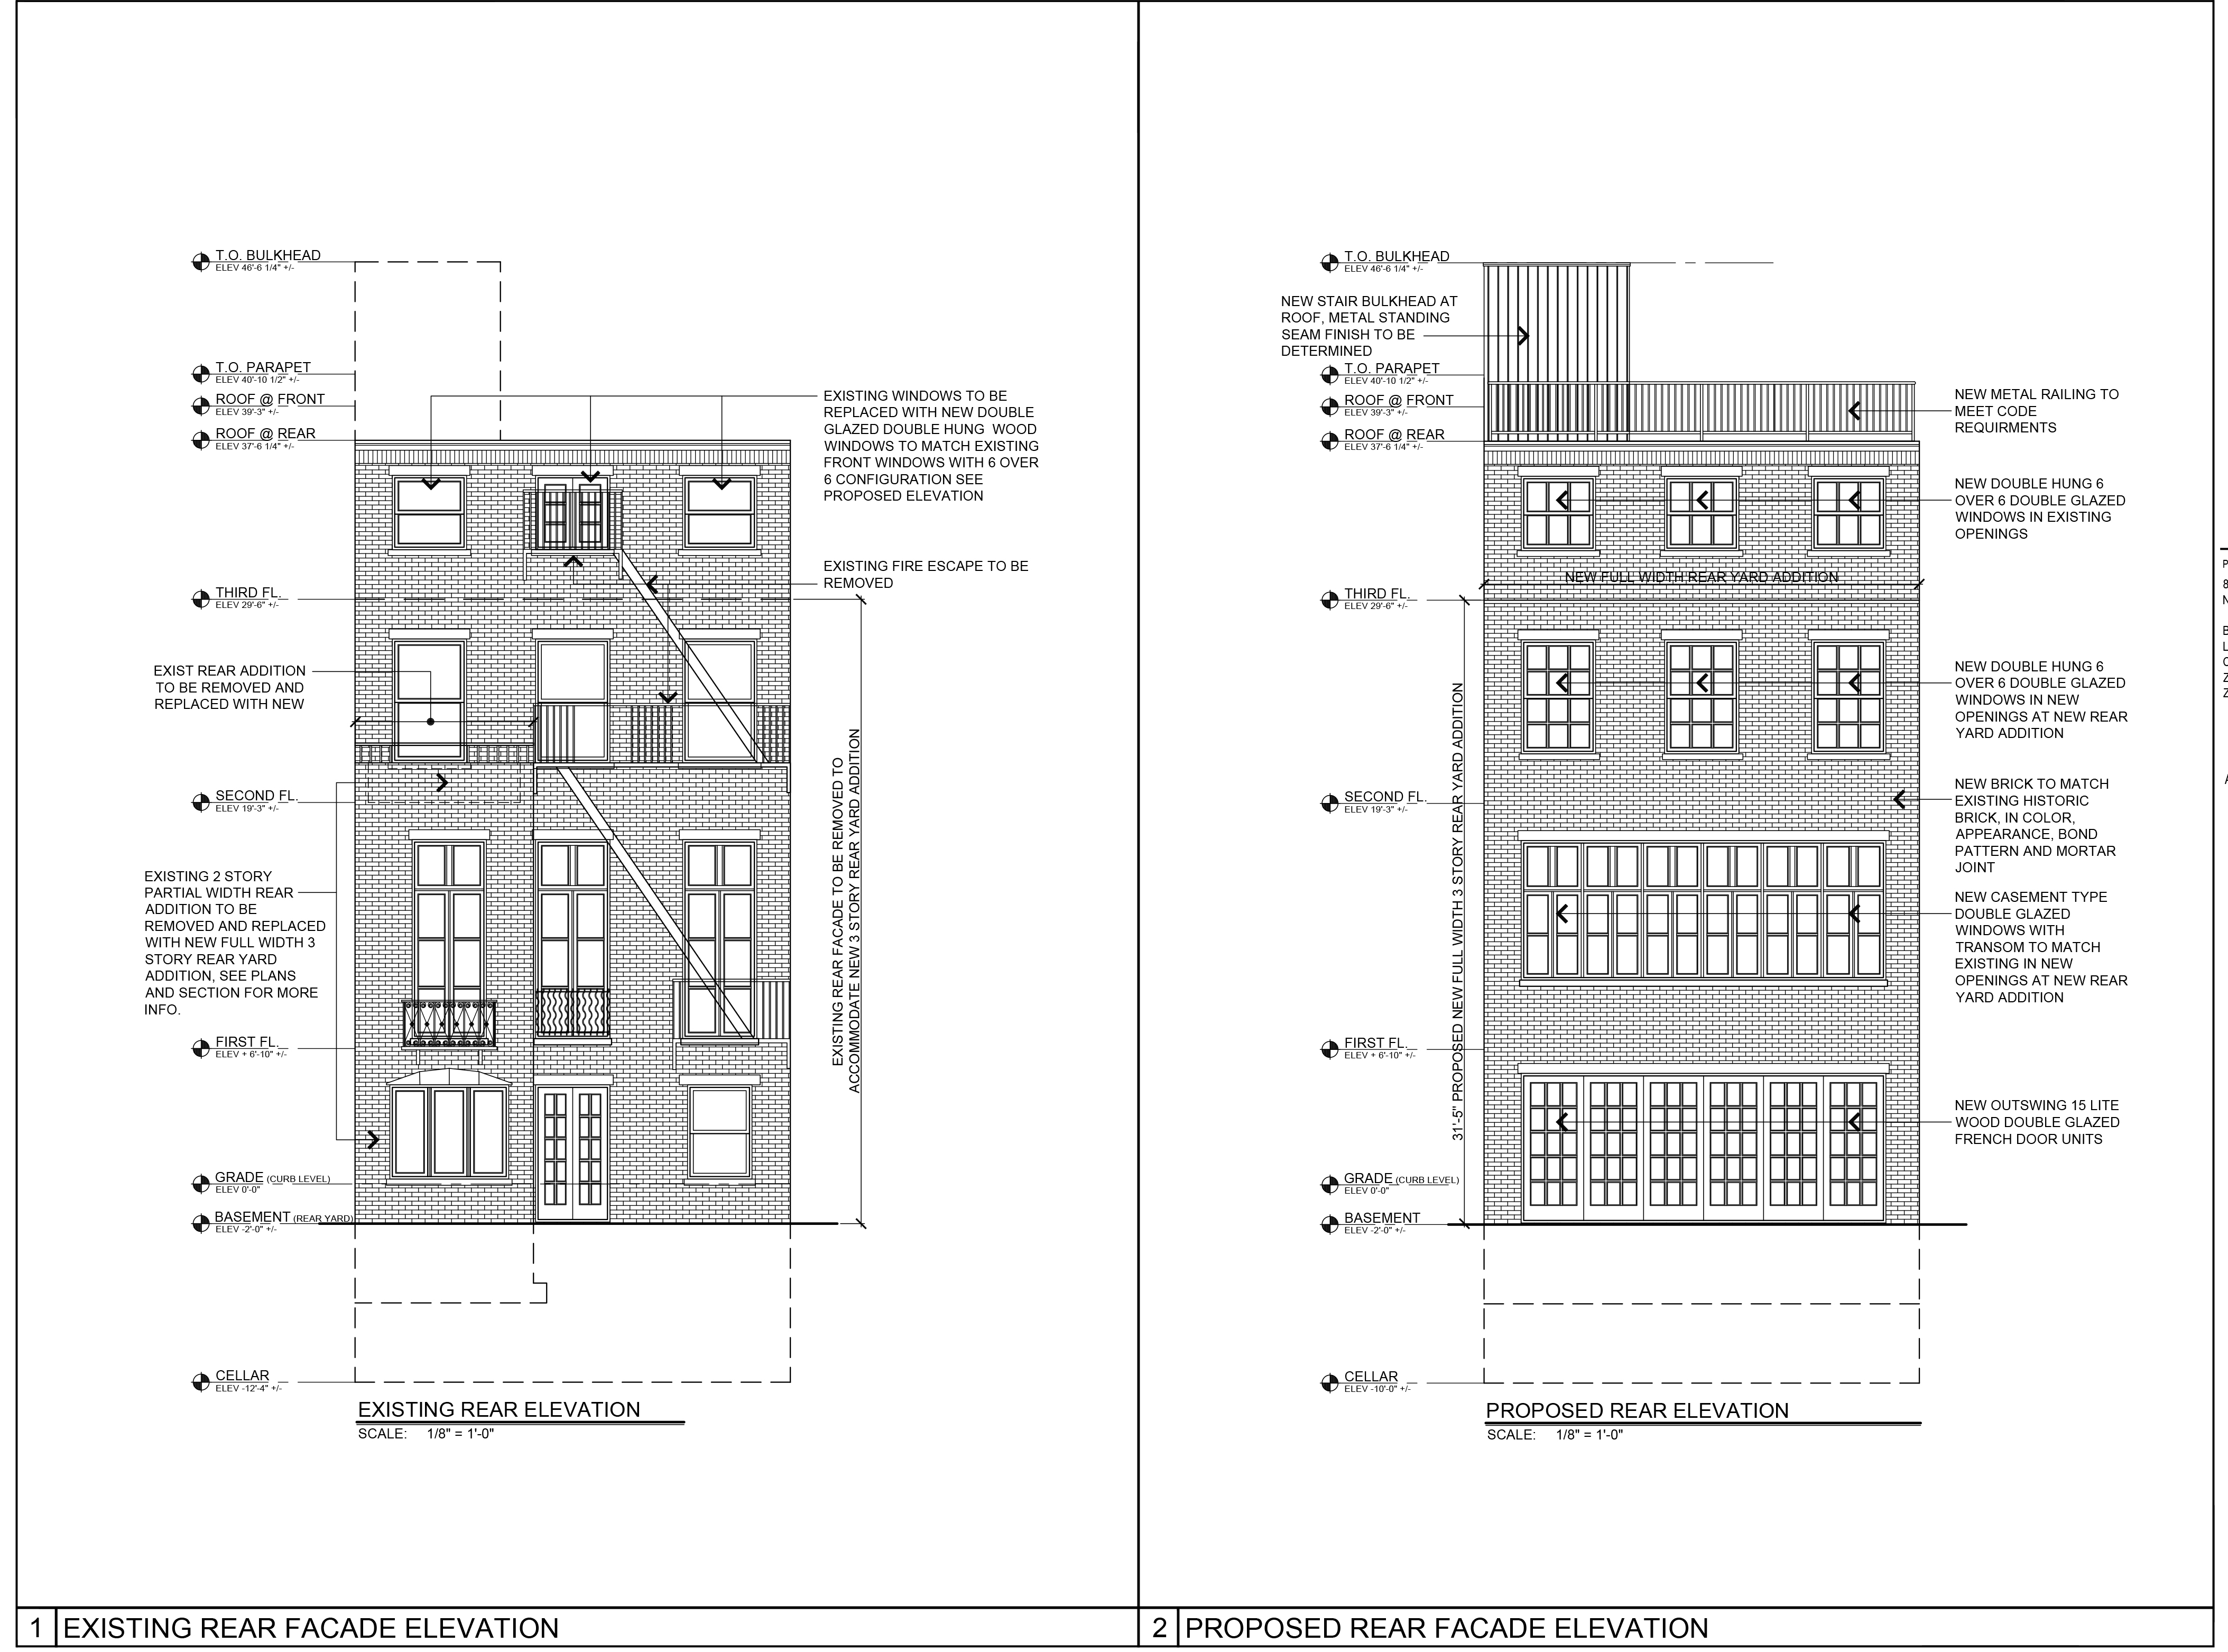 Plan for rear elevation of 8 Perry Street, existing and proposed